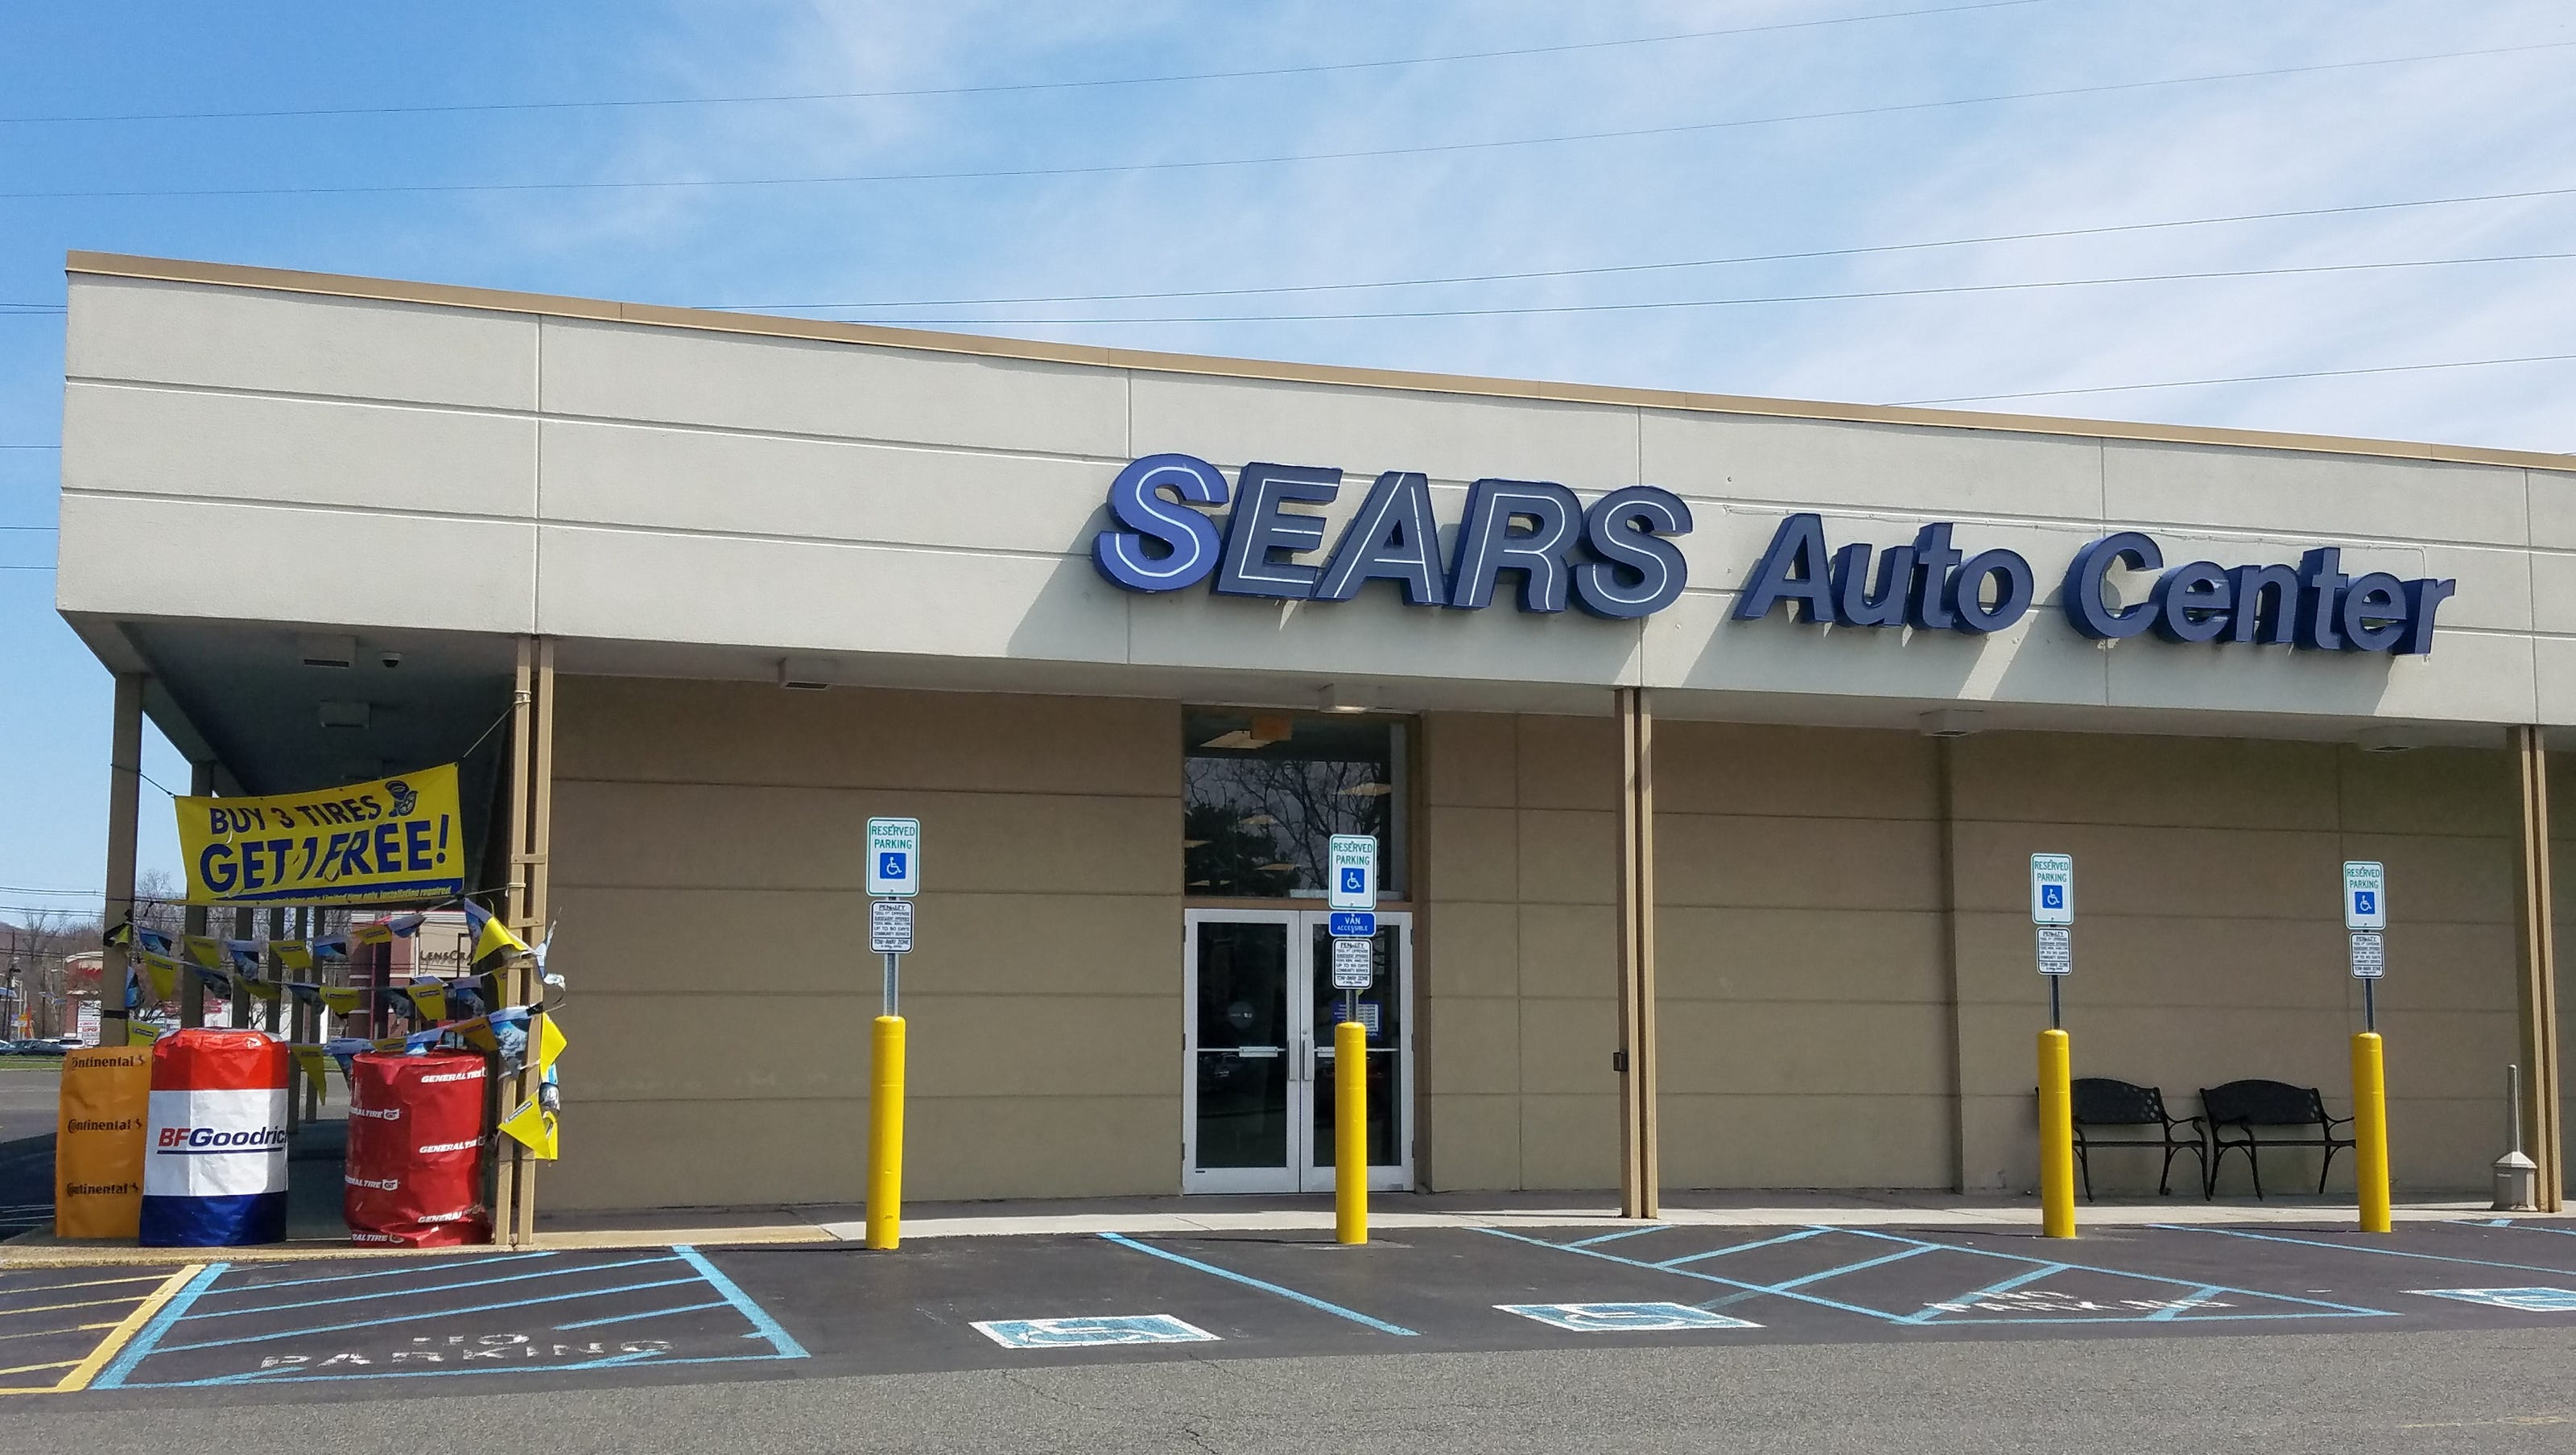 Cinema May Replace Sears Auto Center On Route 22 In Watchung